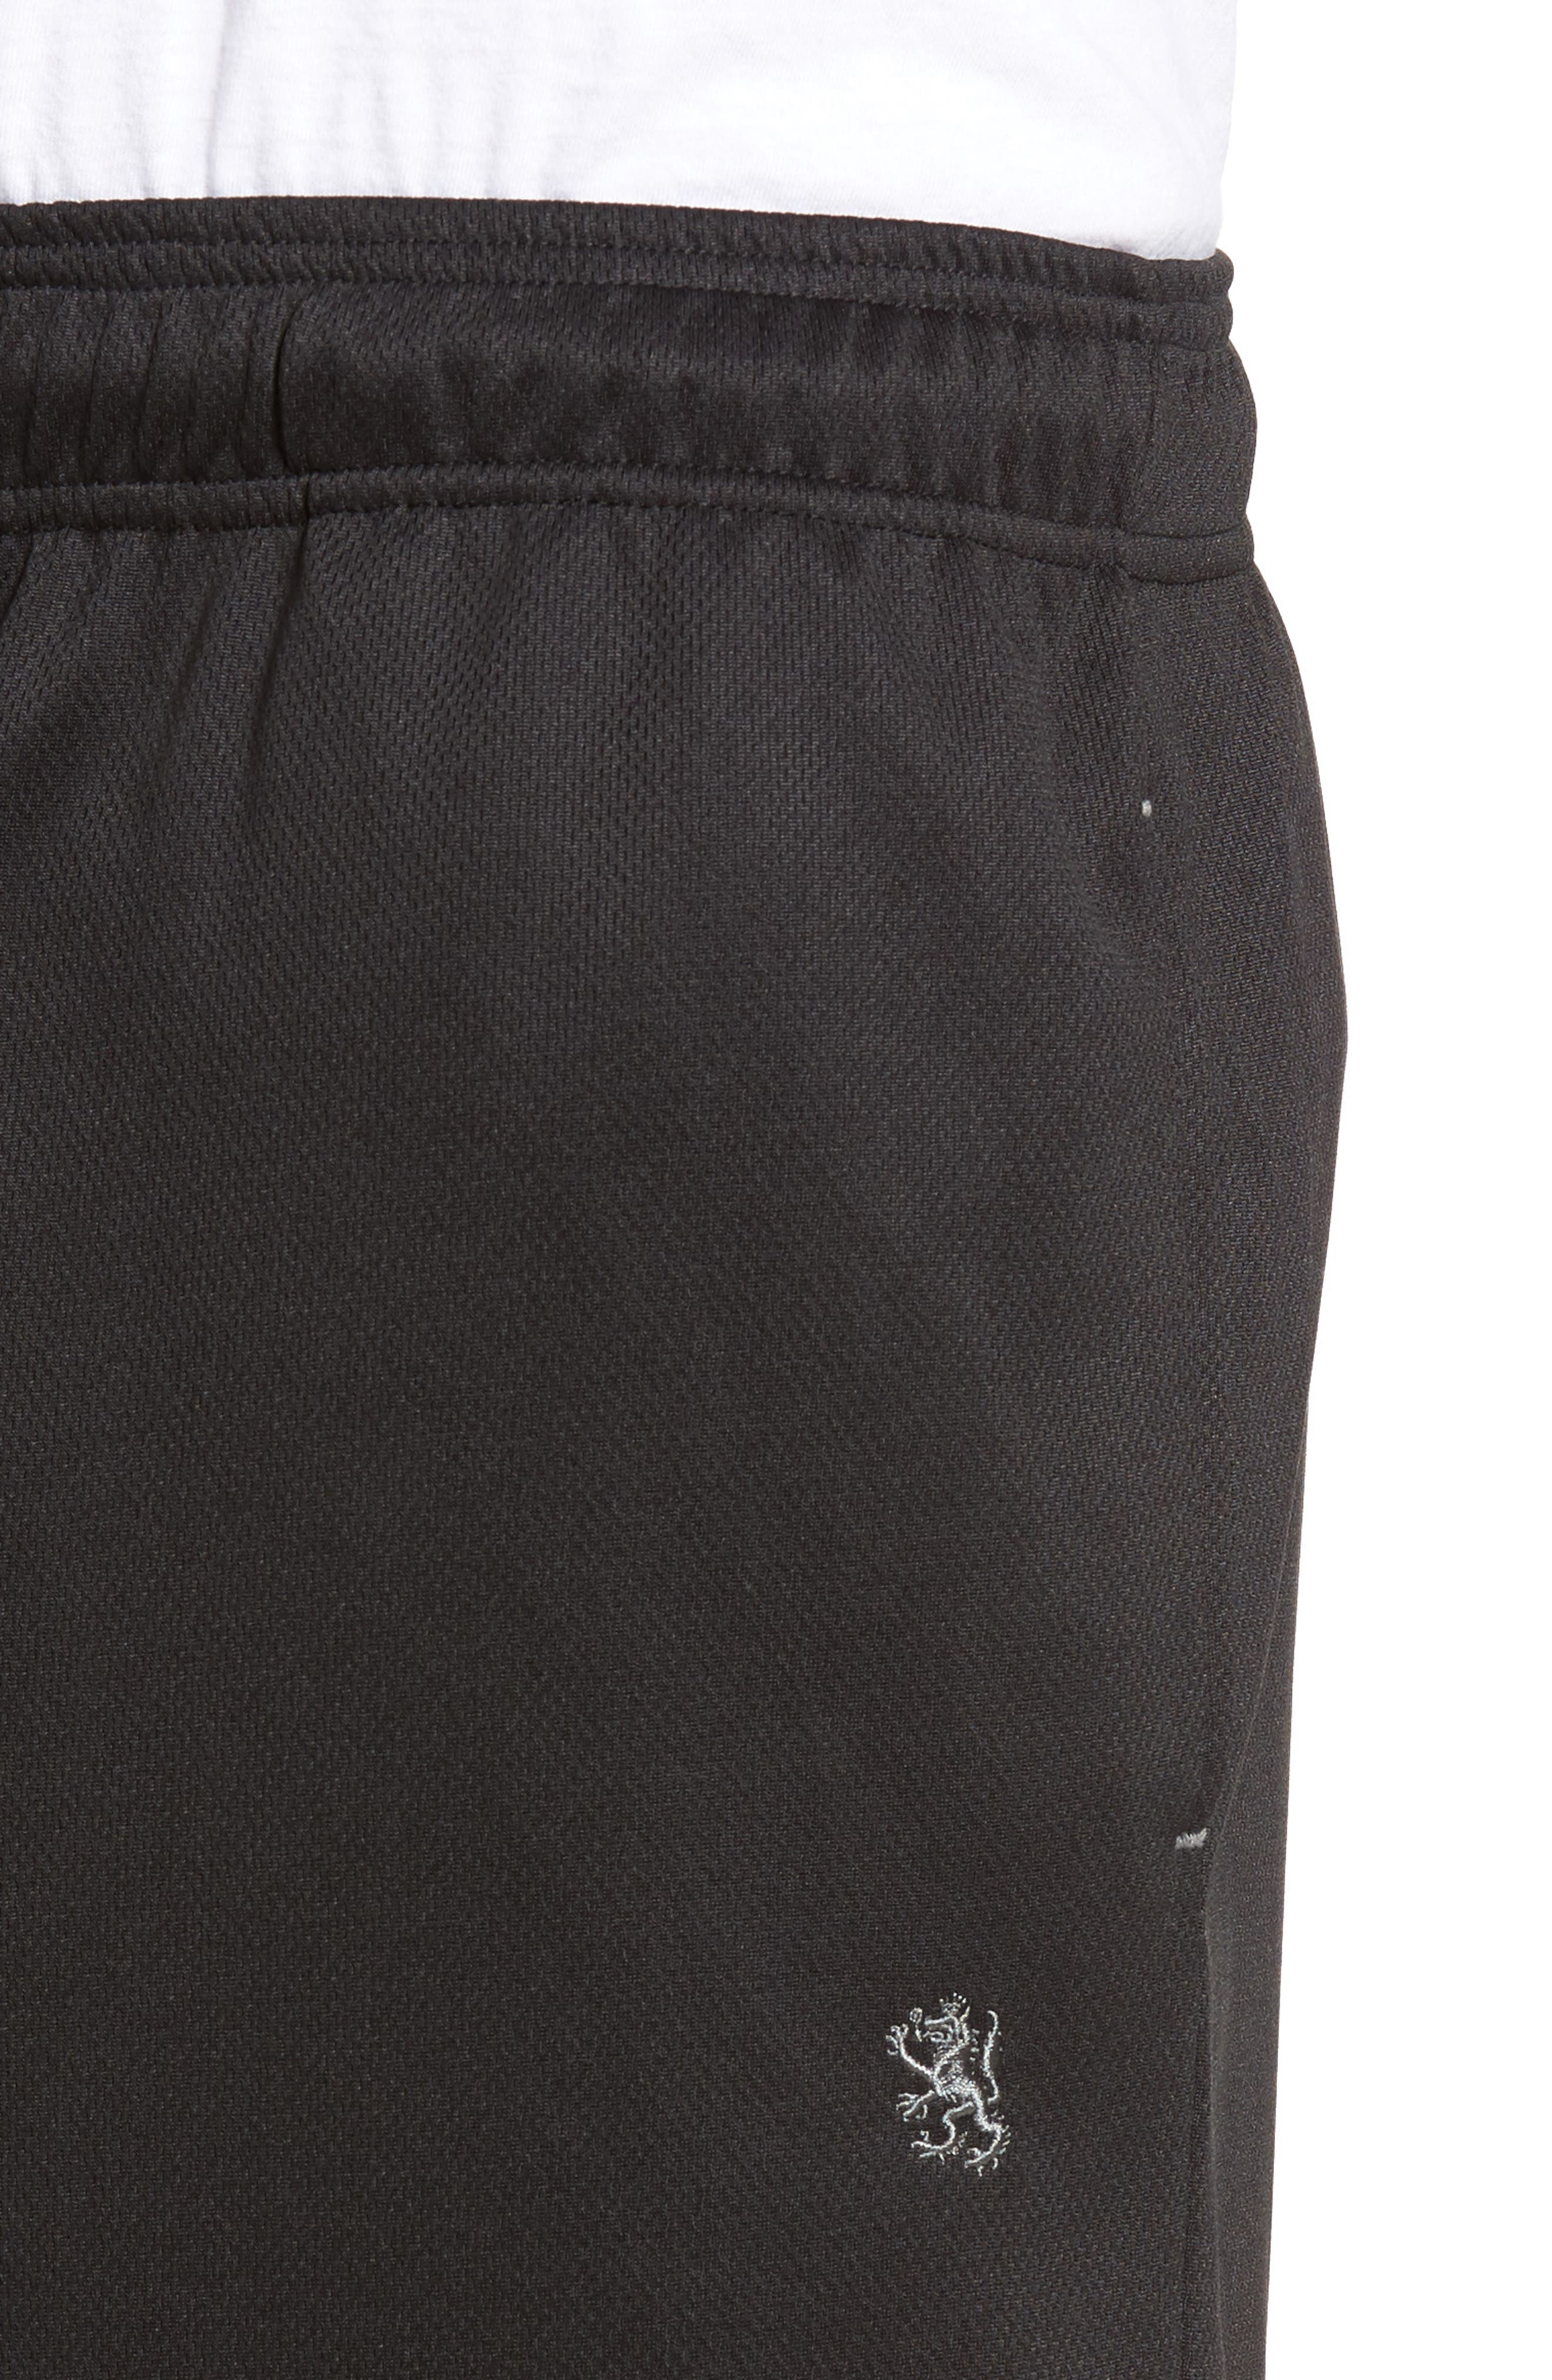 Work Out Lounge Shorts,                             Alternate thumbnail 10, color,